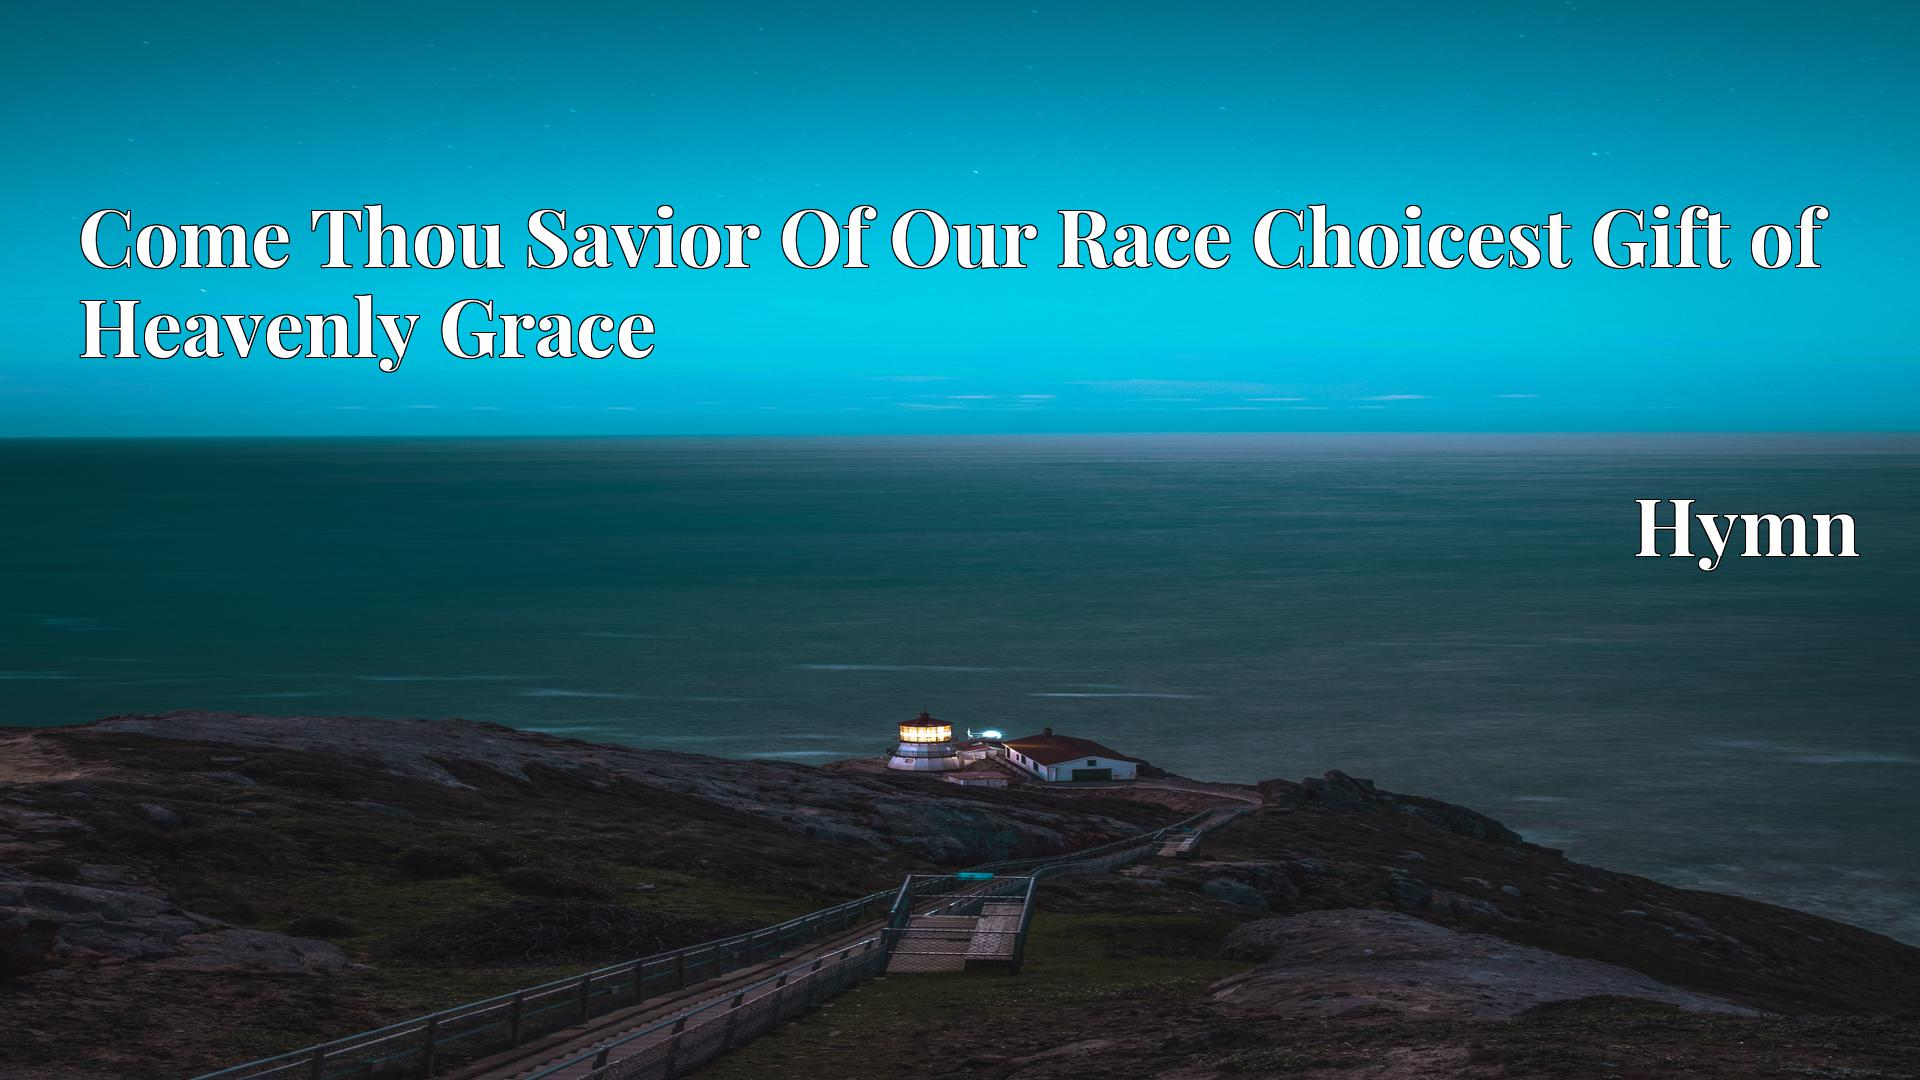 Come Thou Savior Of Our Race Choicest Gift of Heavenly Grace - Hymn